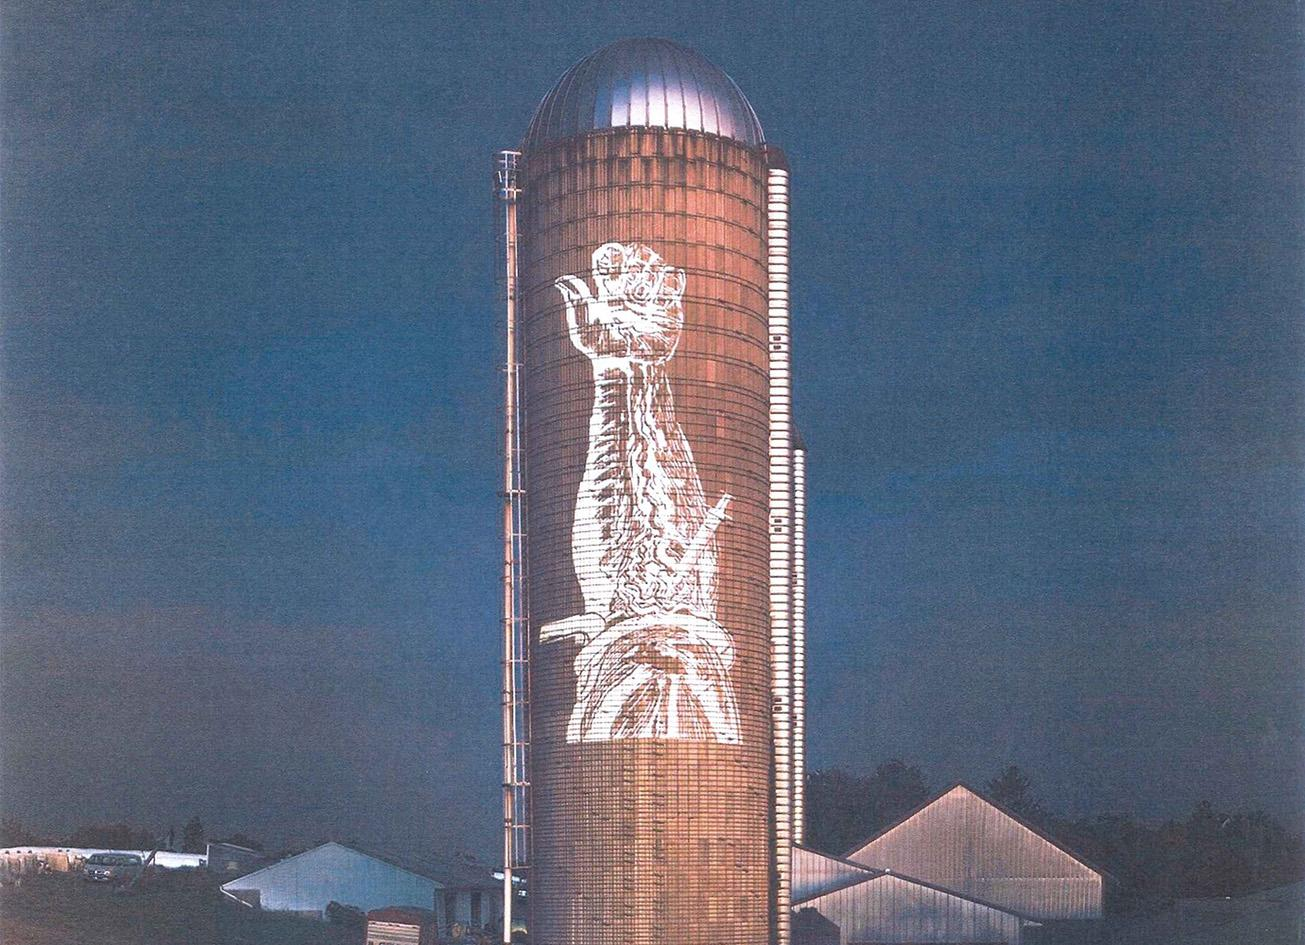 Silo with projection